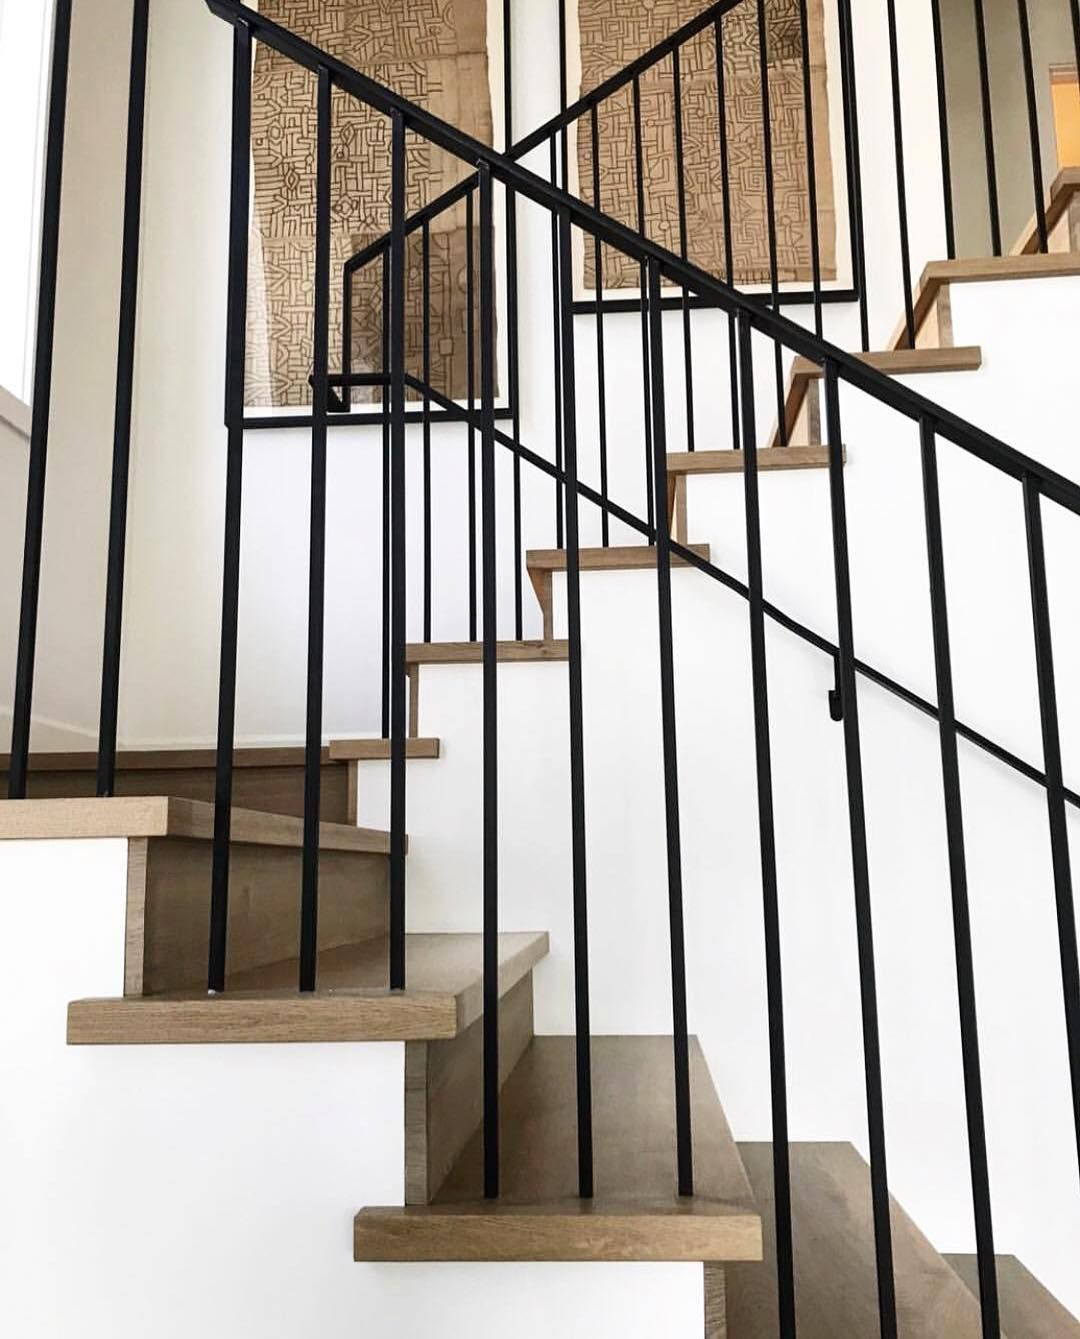 Railing And Steps Balusters Are 1 2 Square And The Handrail Is 1 1 2 Flat Stock Warren Christopher Floors Stairs Coastal Interiors Design Iron Handrails